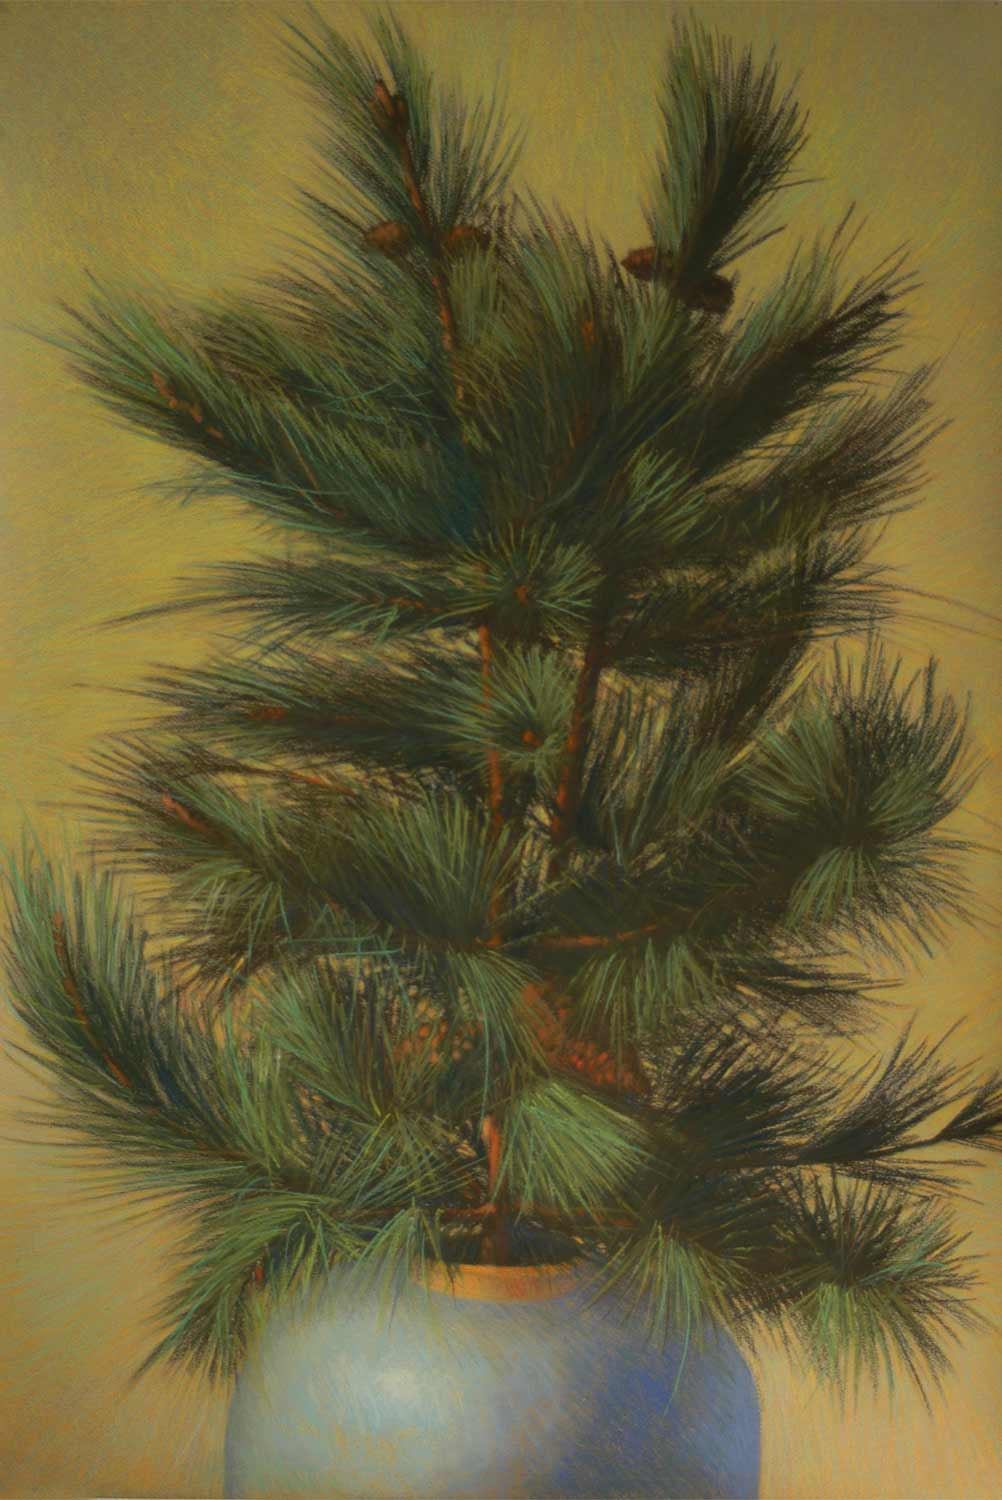 Pineboughs, pastel by Jim Promessi, 35 x 23